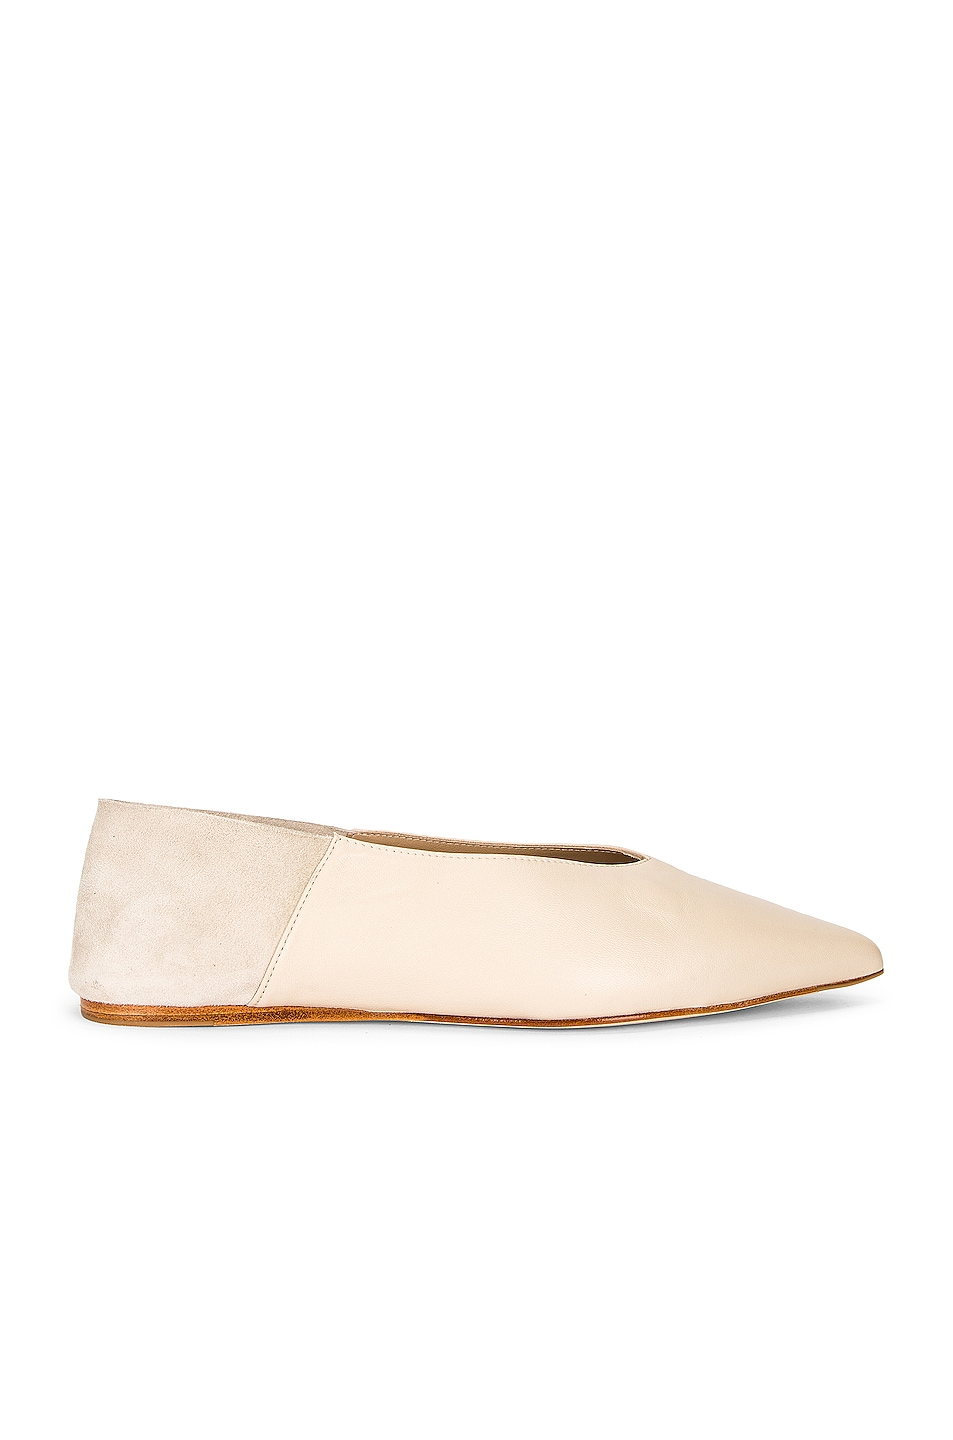 Image 1 of Studio Amelia Pointed Babouche Slipper Flat in Stone